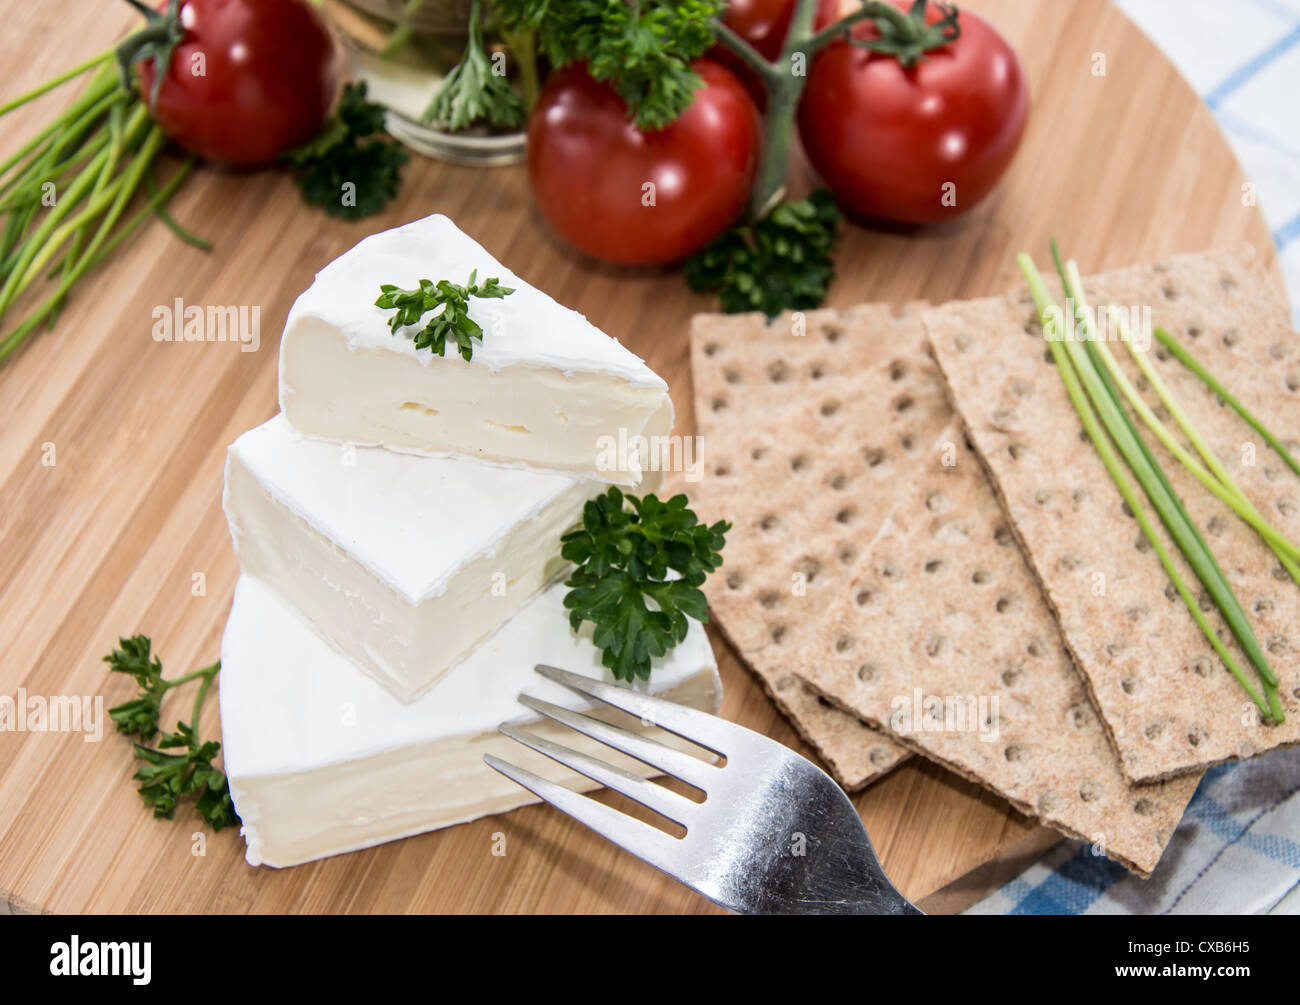 Camembert with Crispbread and Herbs on a cutting board - Stock Image